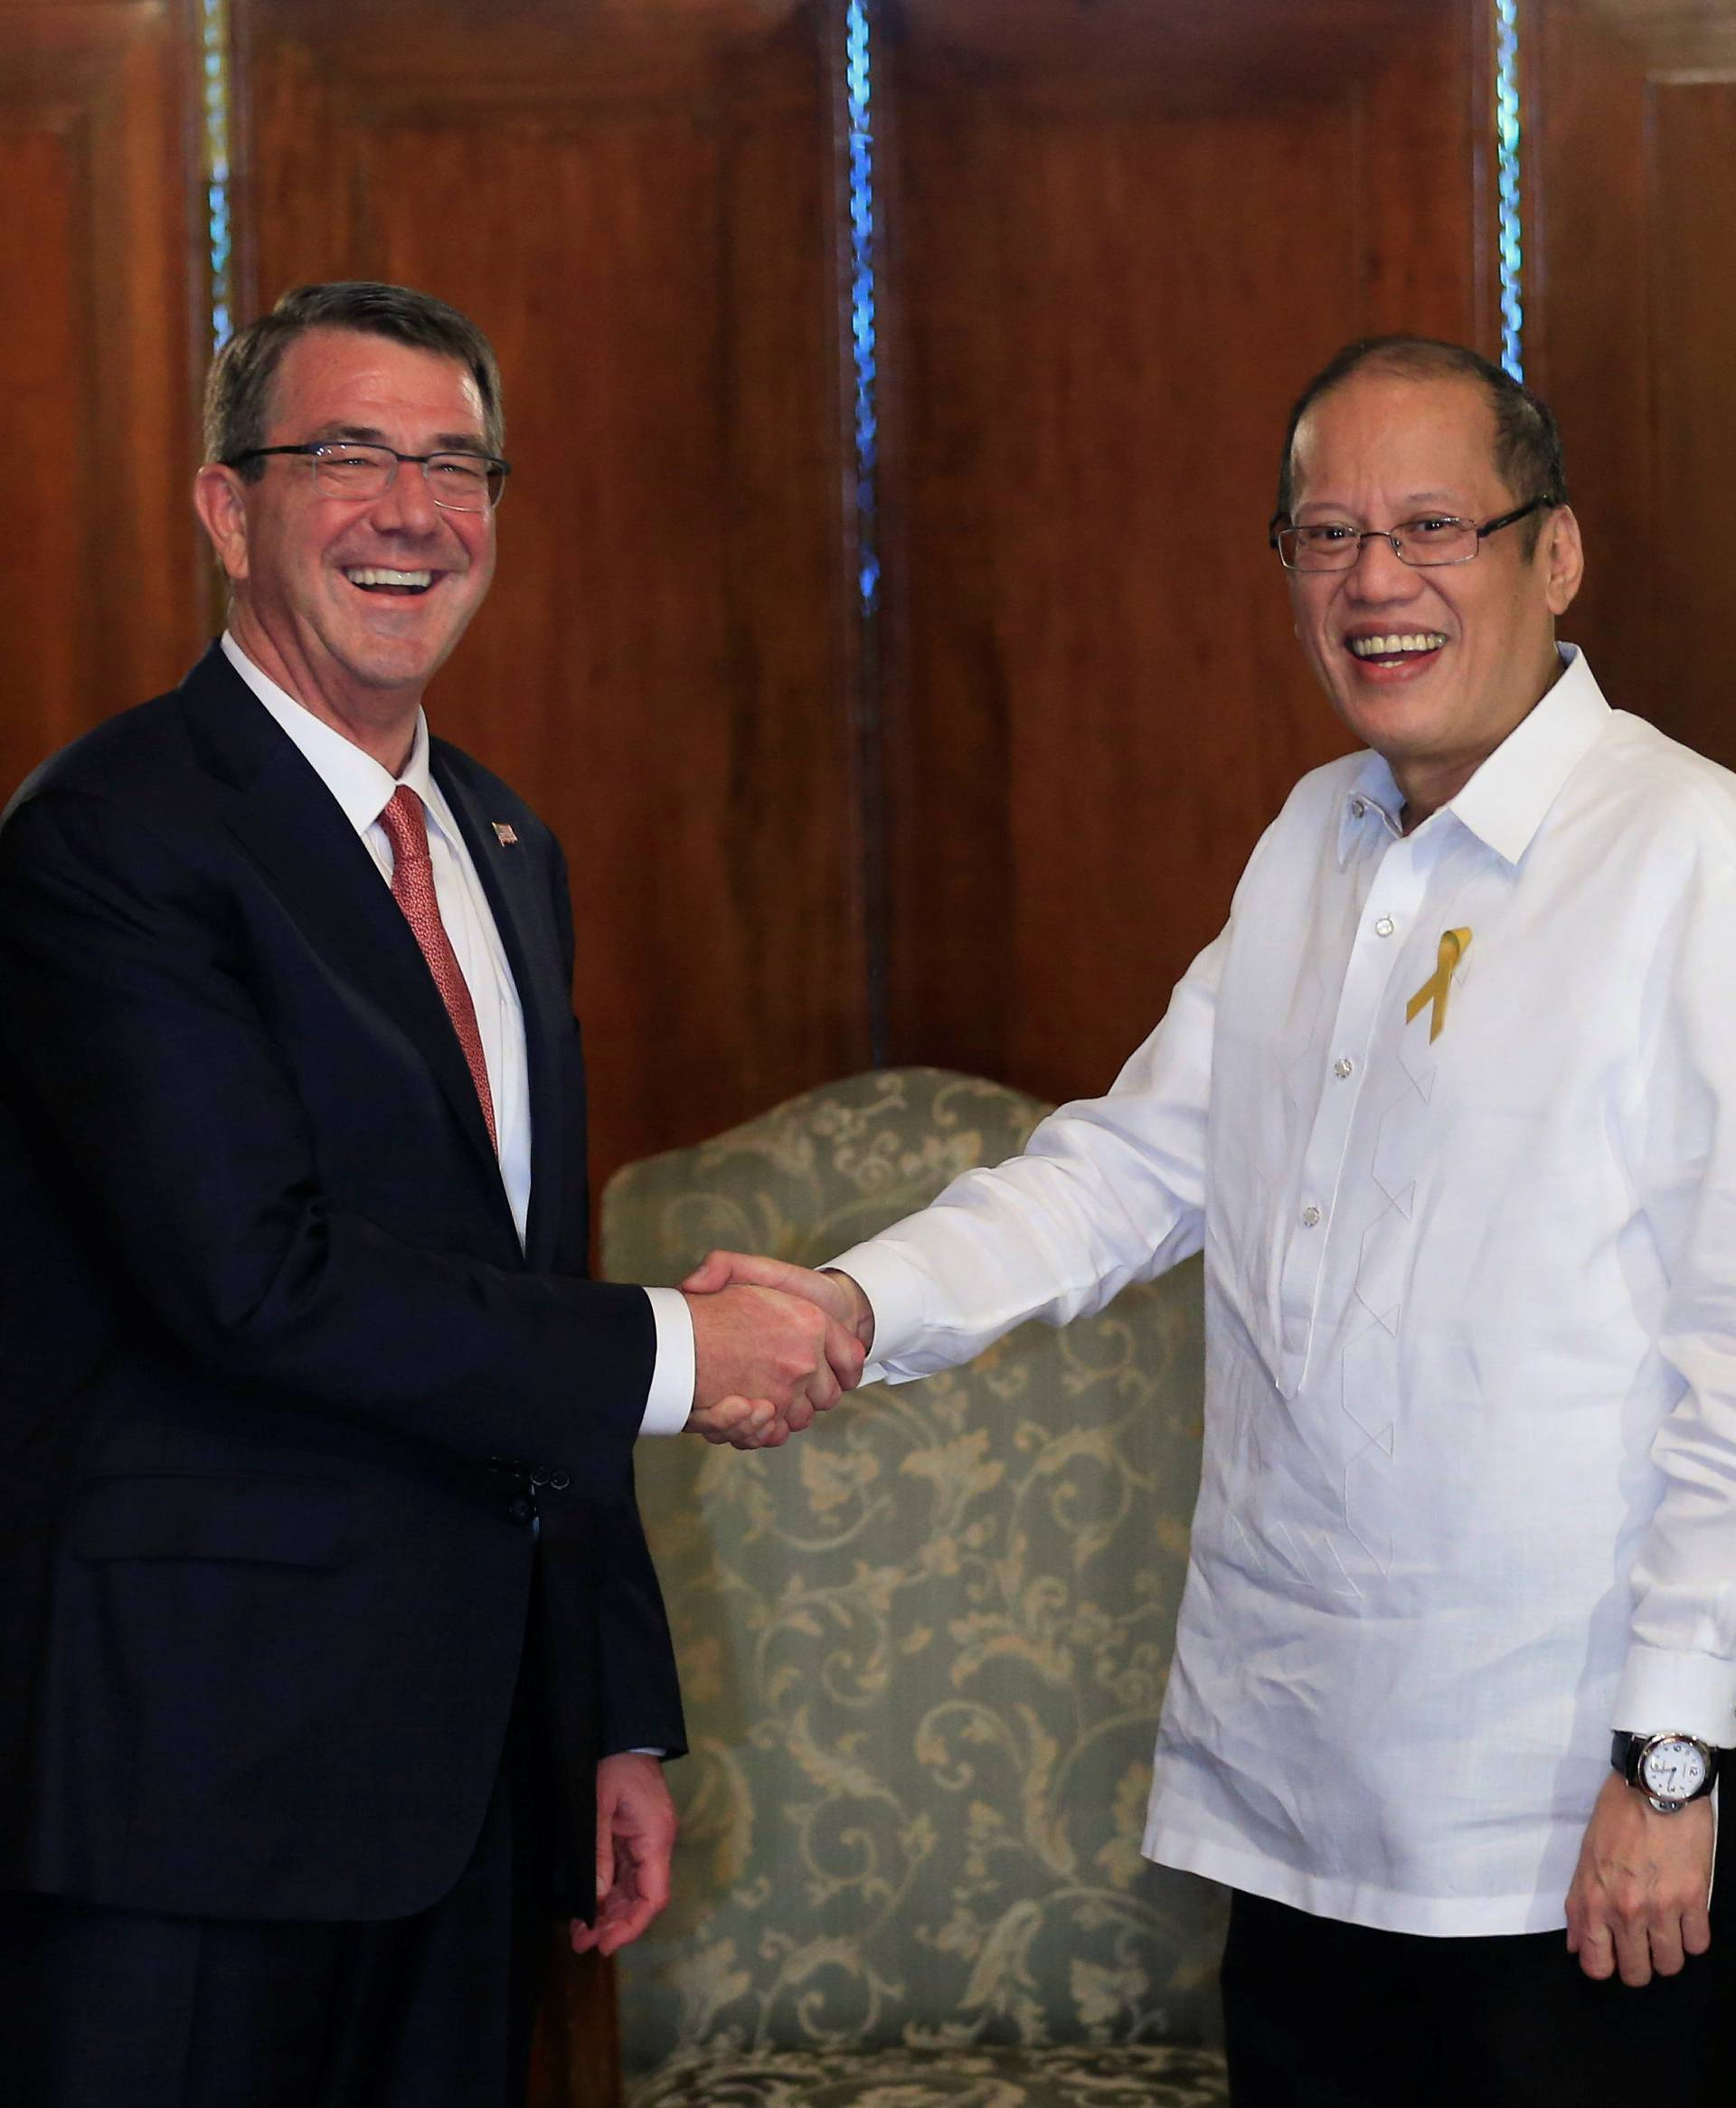 President of the Philippines Benigno Aquino greets visiting U.S. Defense Secretary Ash Carter at the presidential palace in Manila